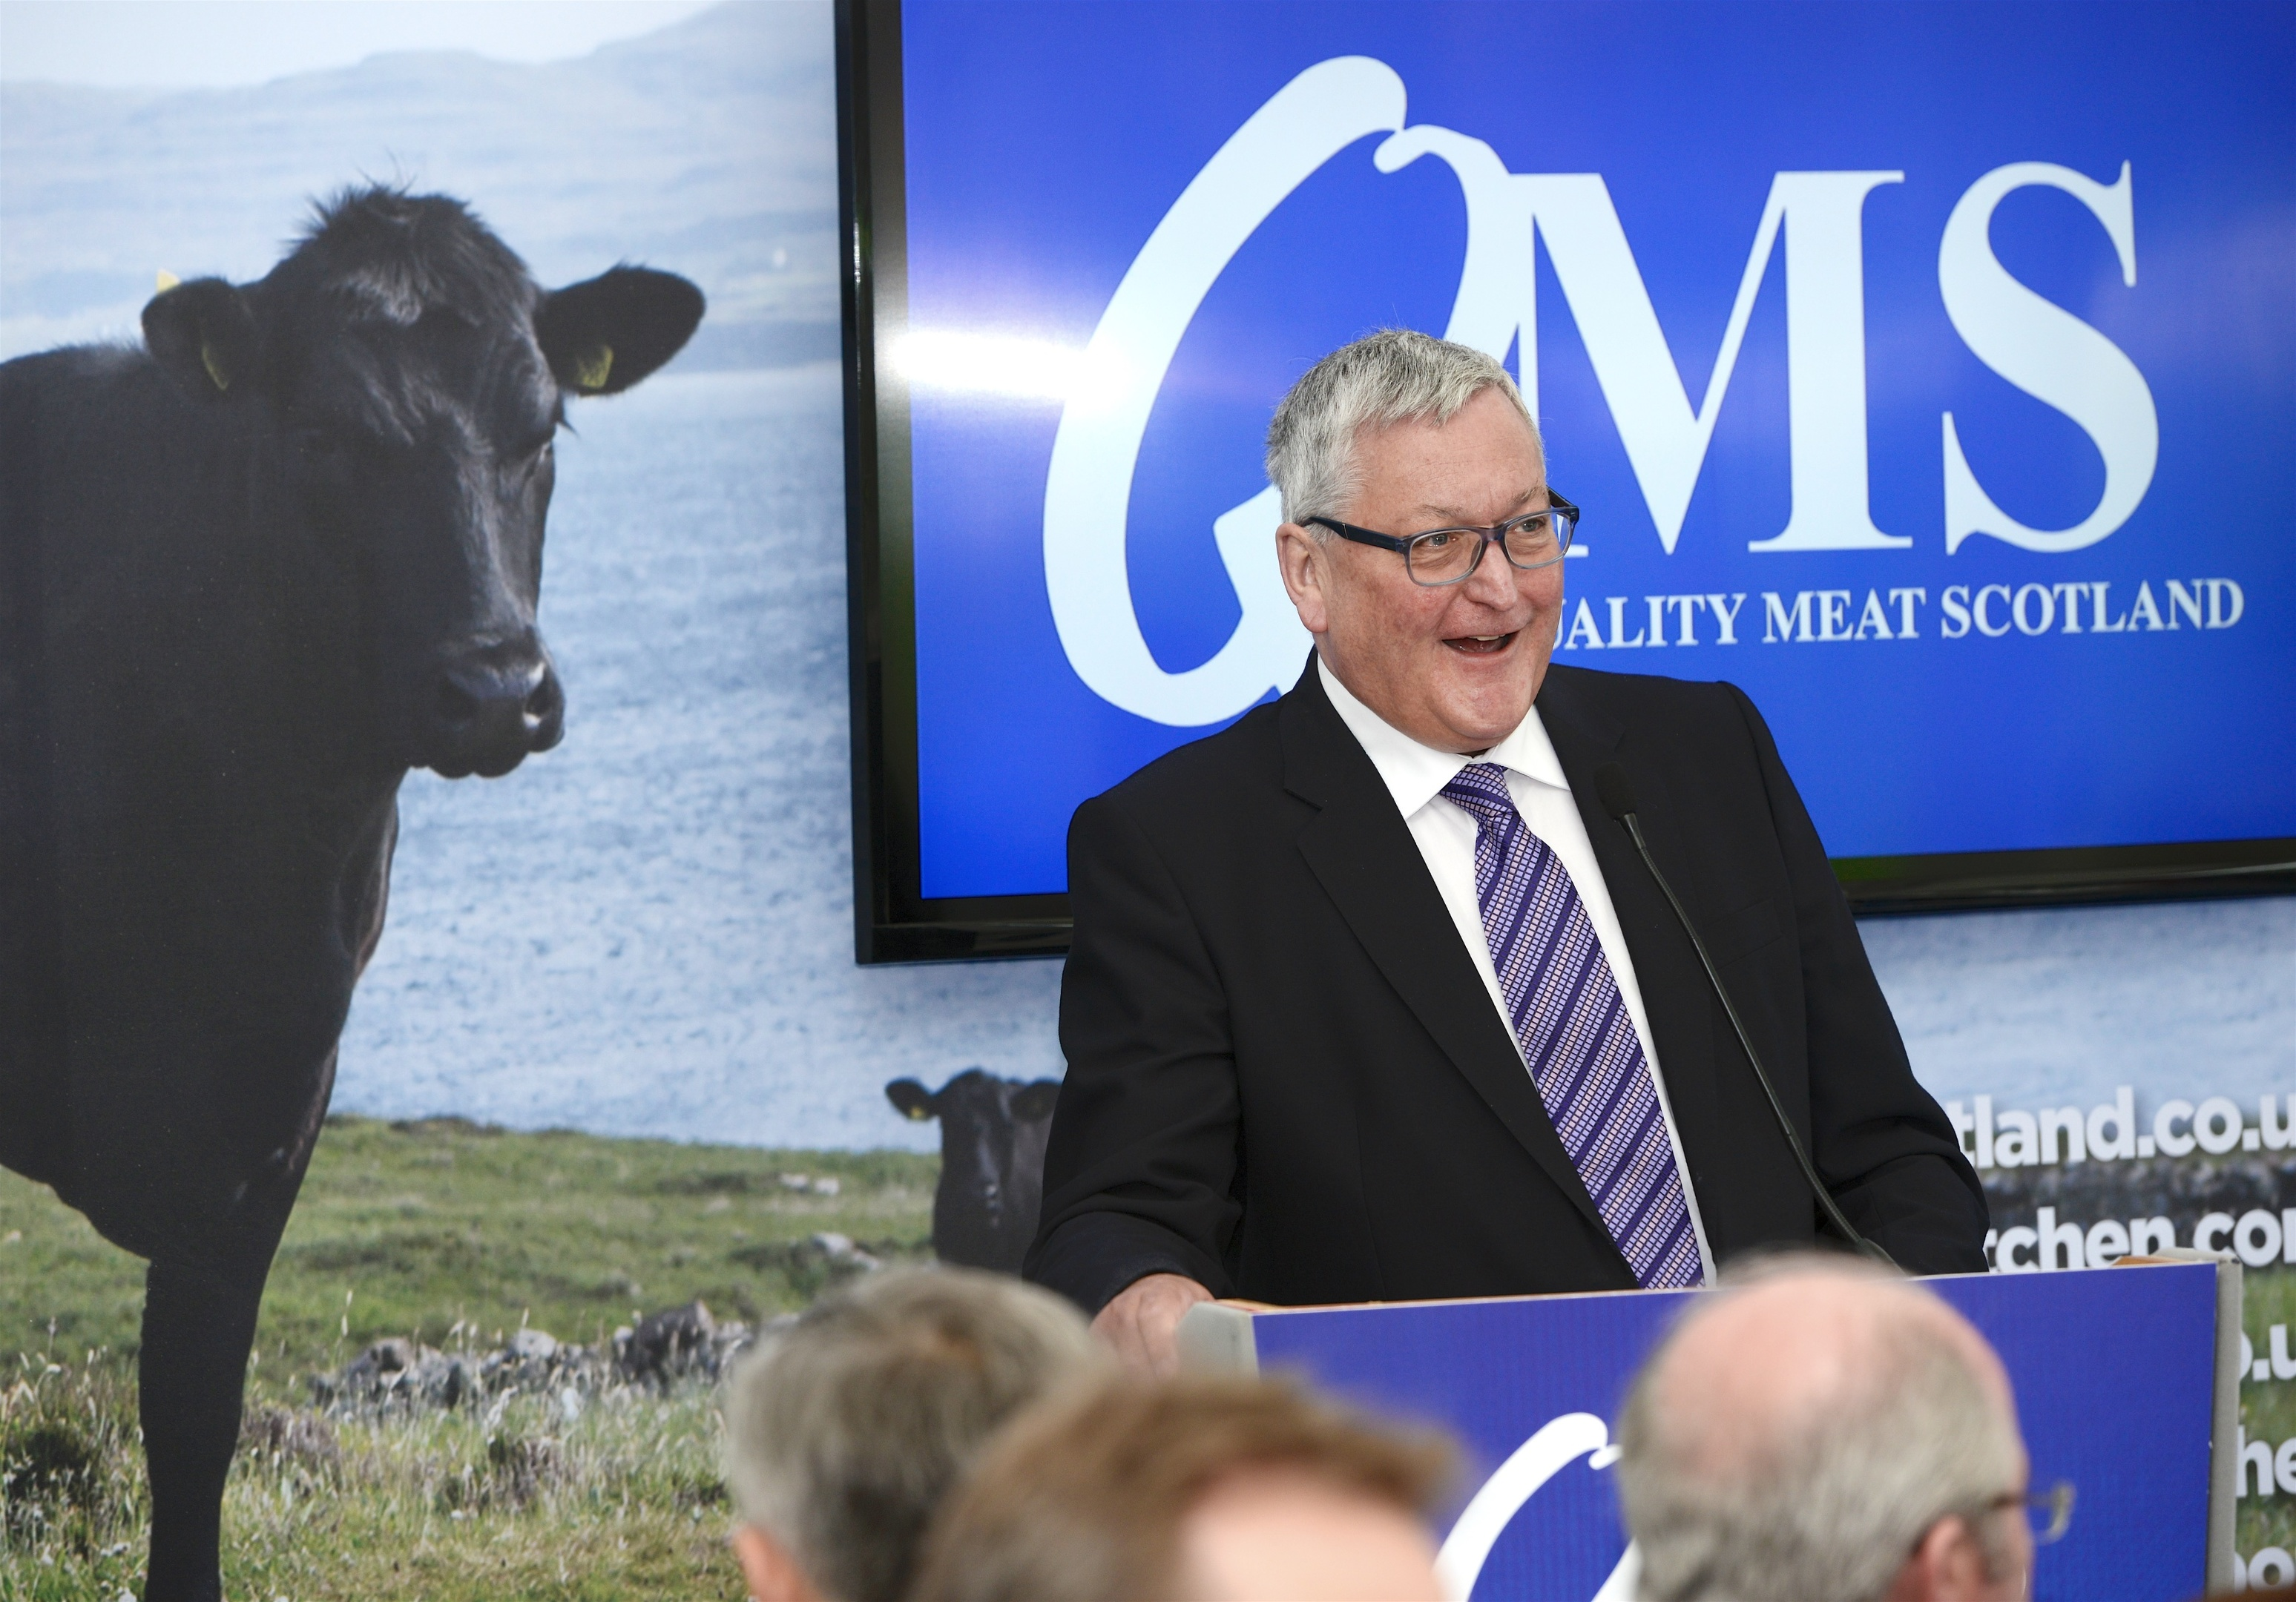 A new national council of rural advisers will make recommendations on future farm support